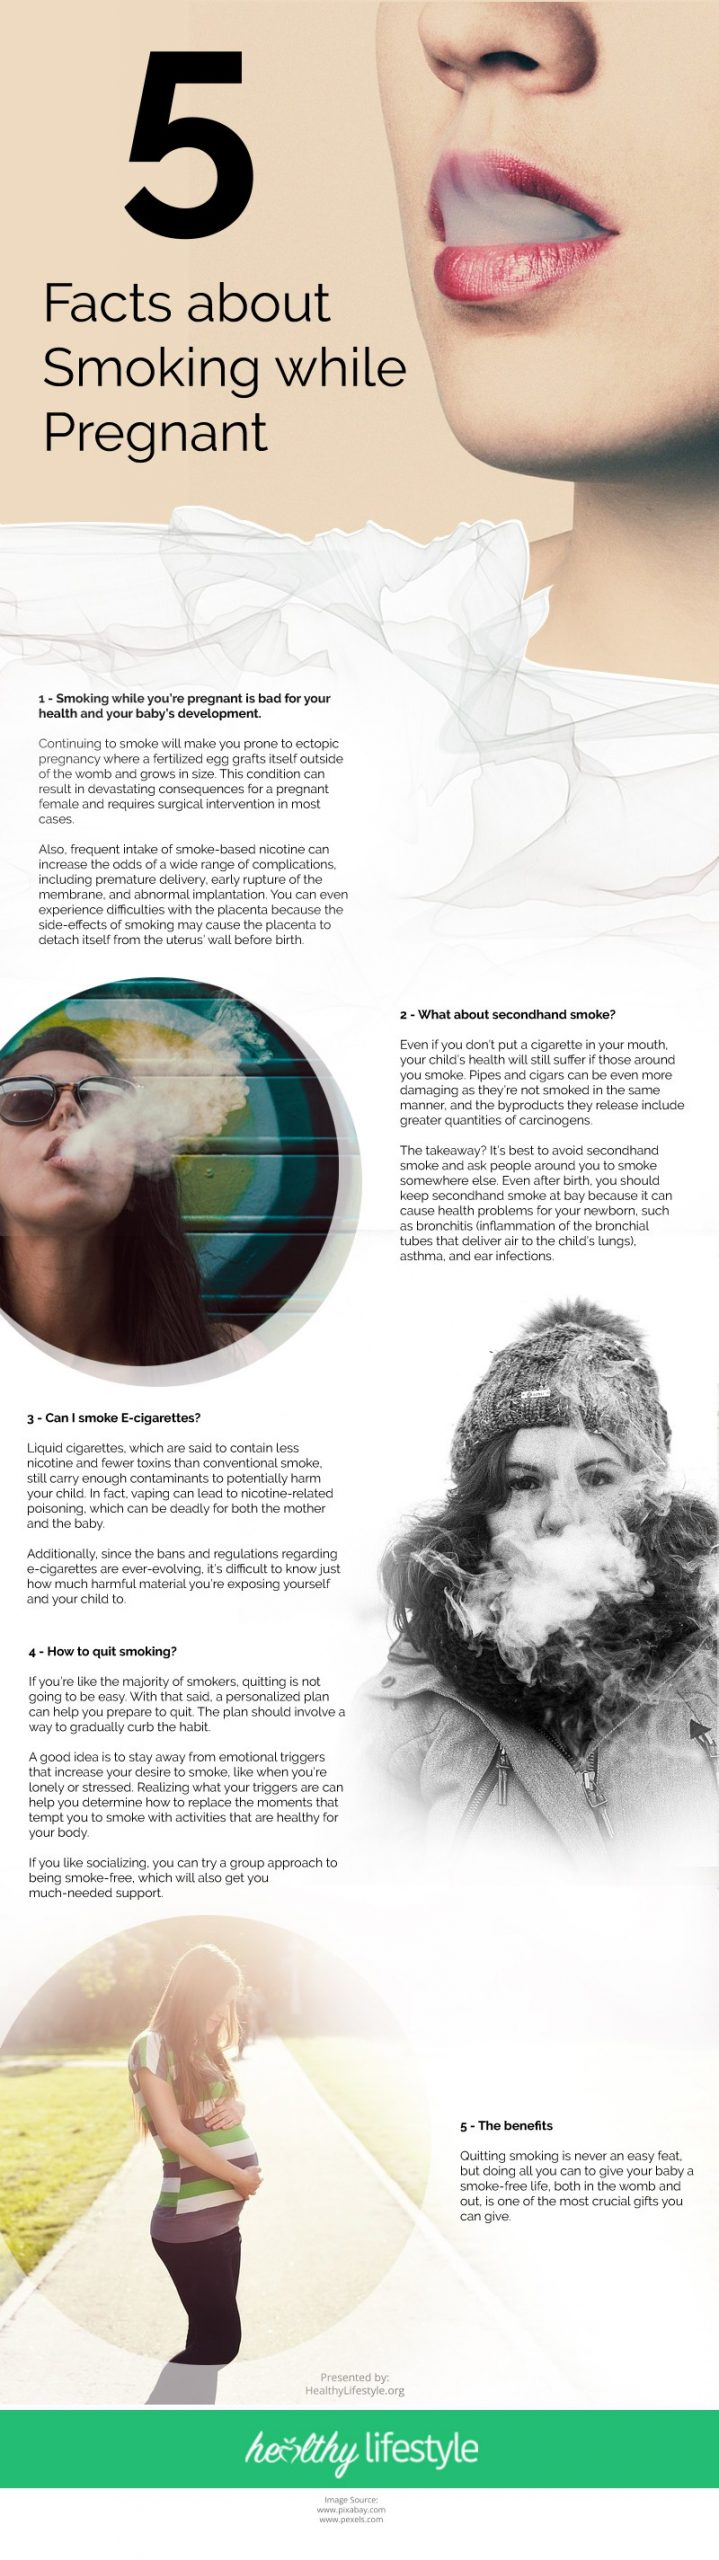 5 Facts about Smoking while Pregnant Infographic